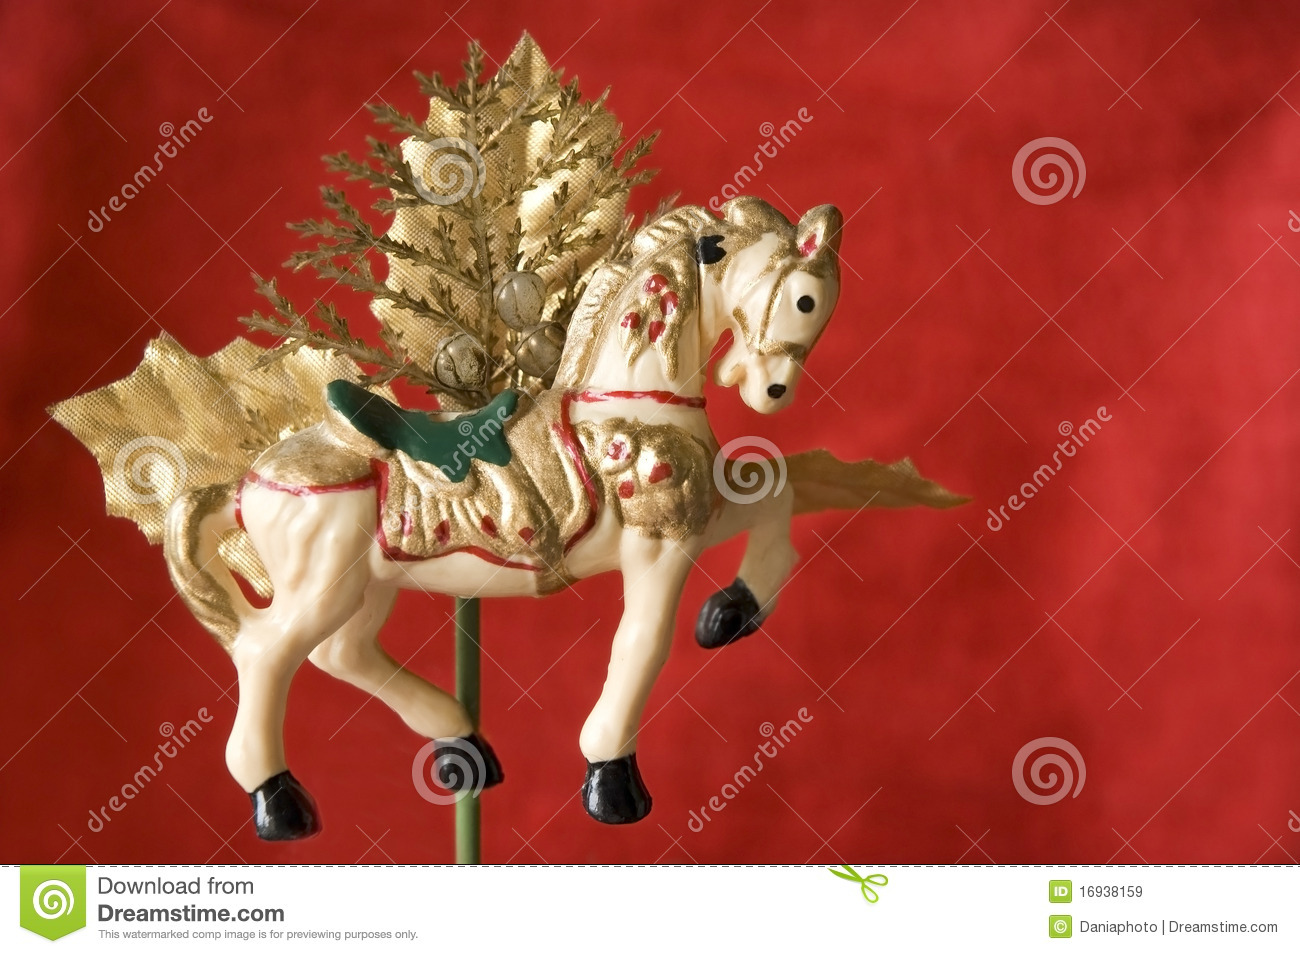 Christmas Decorations For Your Horse : Merry go round christmas ornament horse royalty free stock